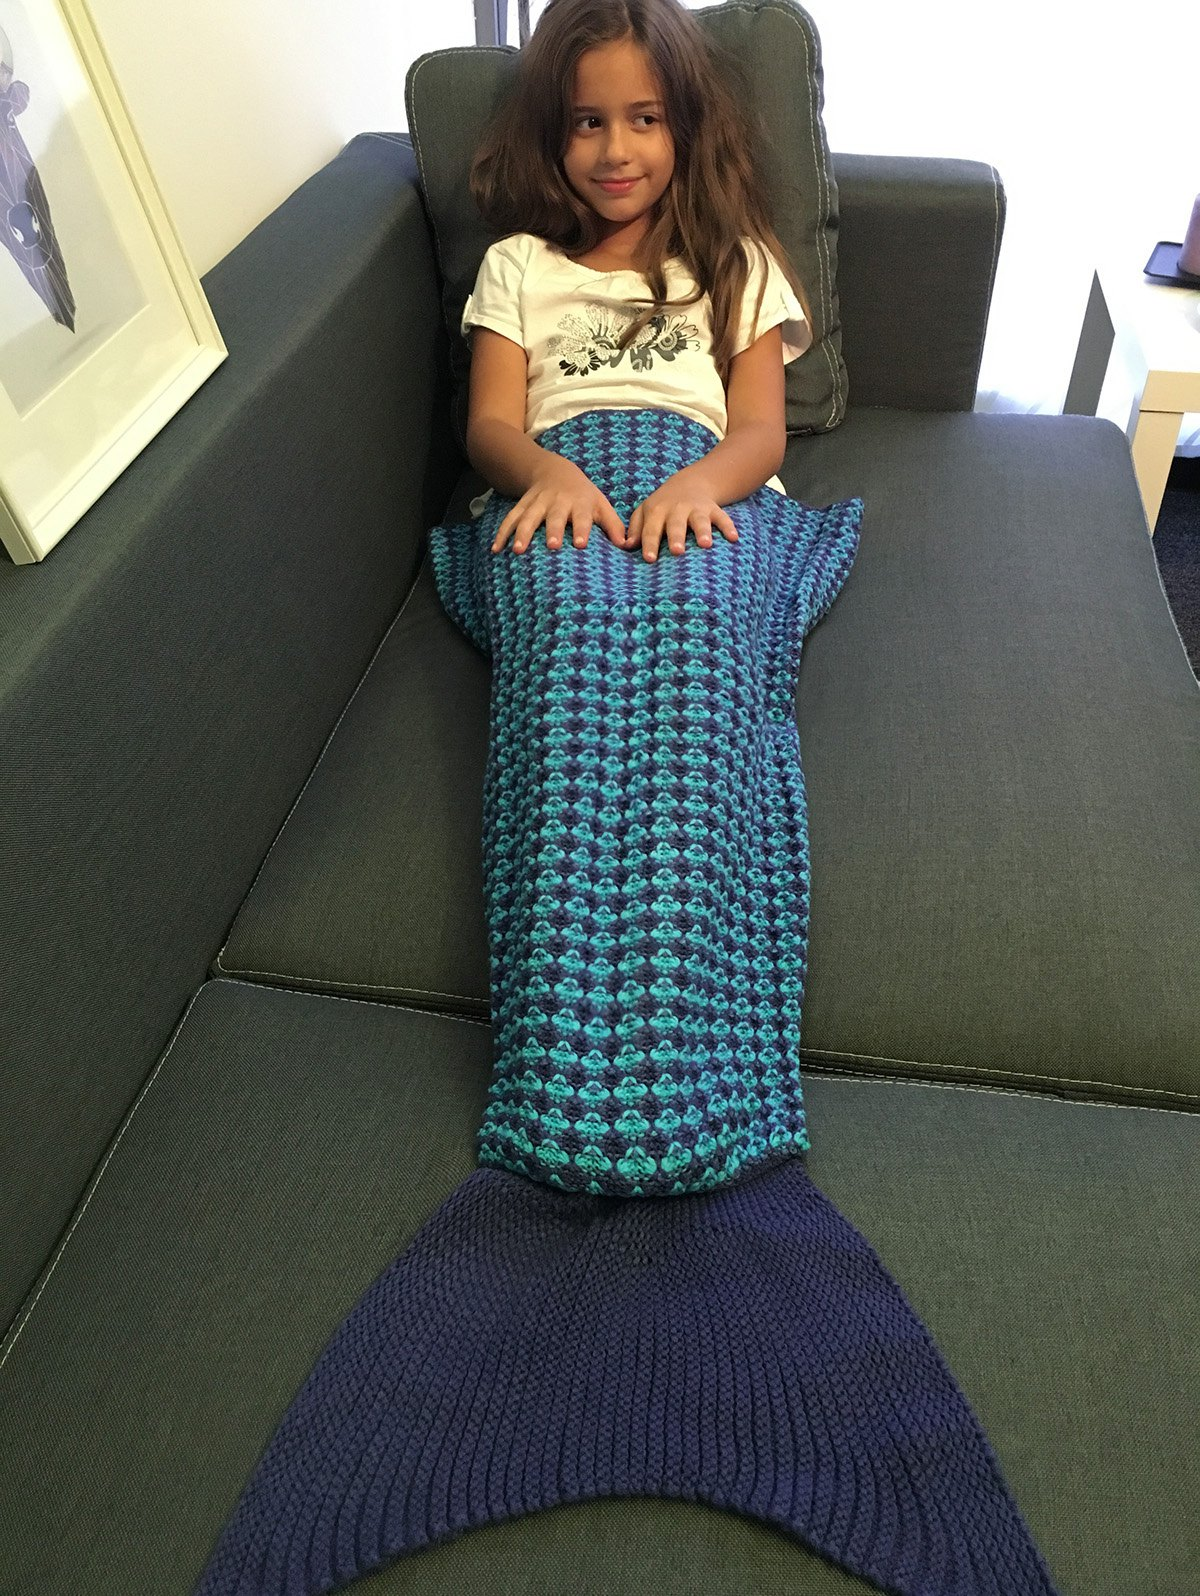 Knitting Pattern Fishtail Blanket : Crochet Knitting Stripe Pattern Kids Fish Tail Design Blanket, DEEP BLUE...